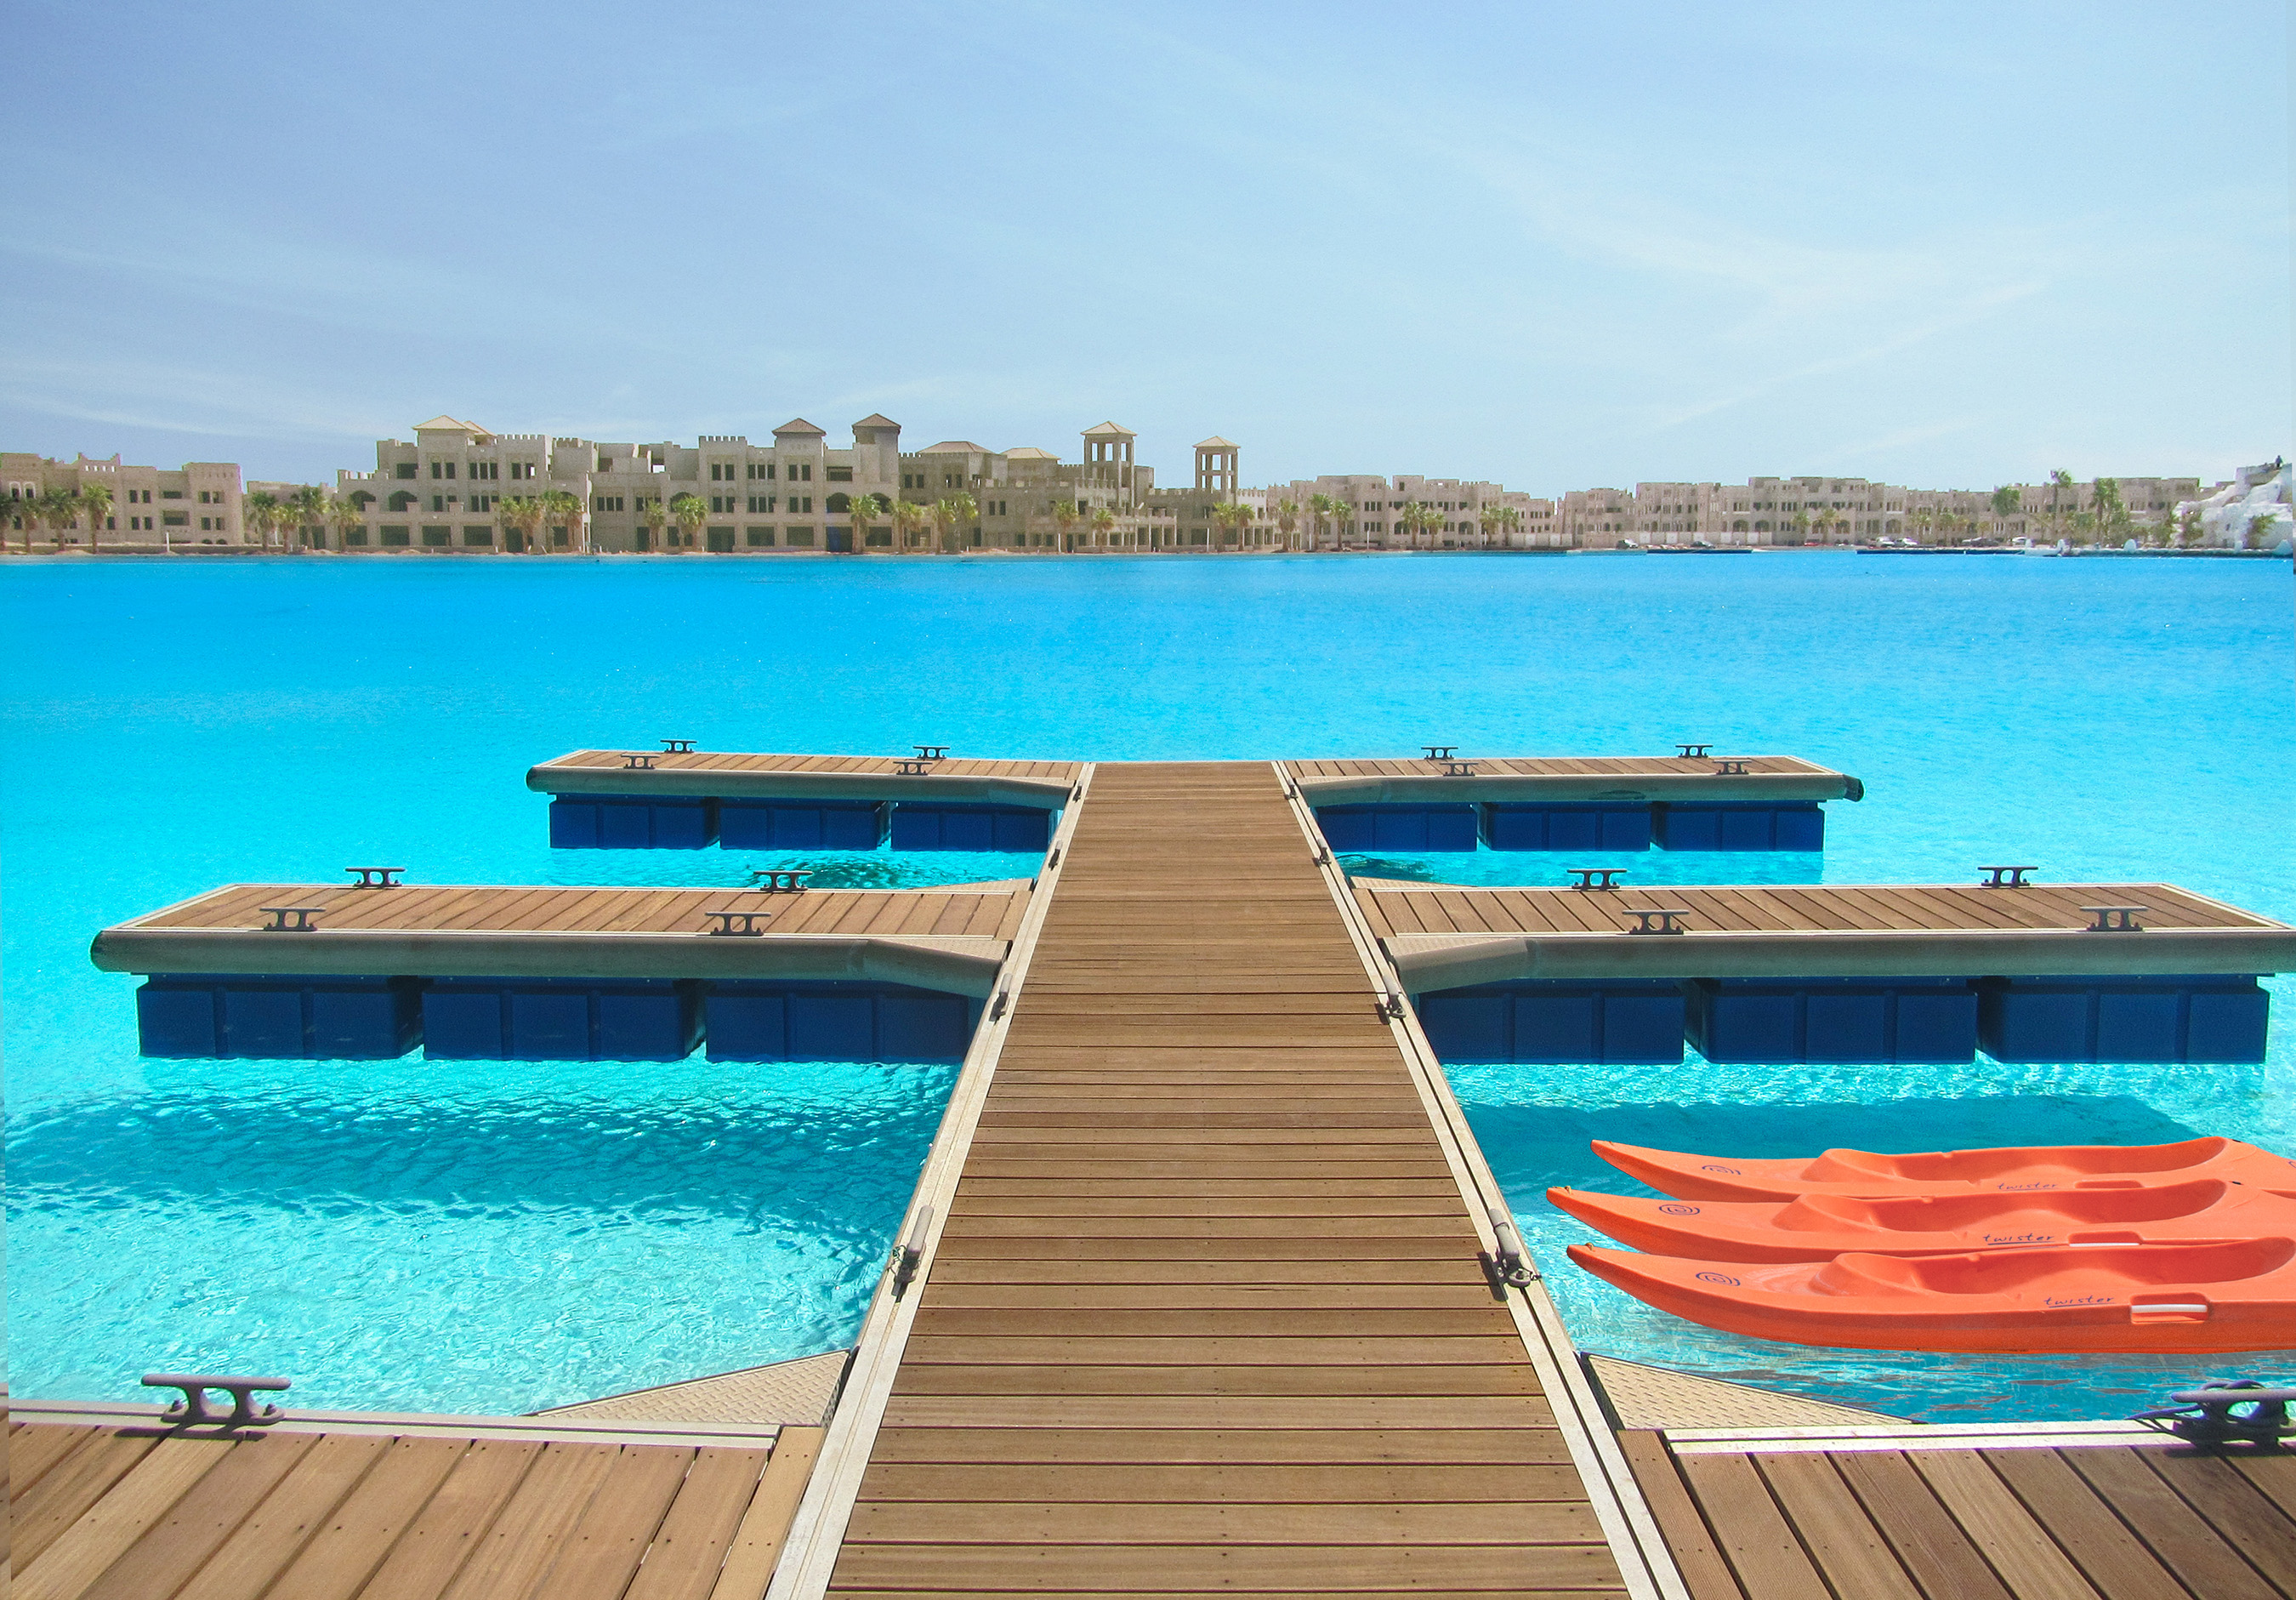 Crystal Lagoons Corp awarded a second Guinness World Record to its growing list of global accolades with the company's 12.5-hectare Sharm El Sheikh man-made lagoon project.